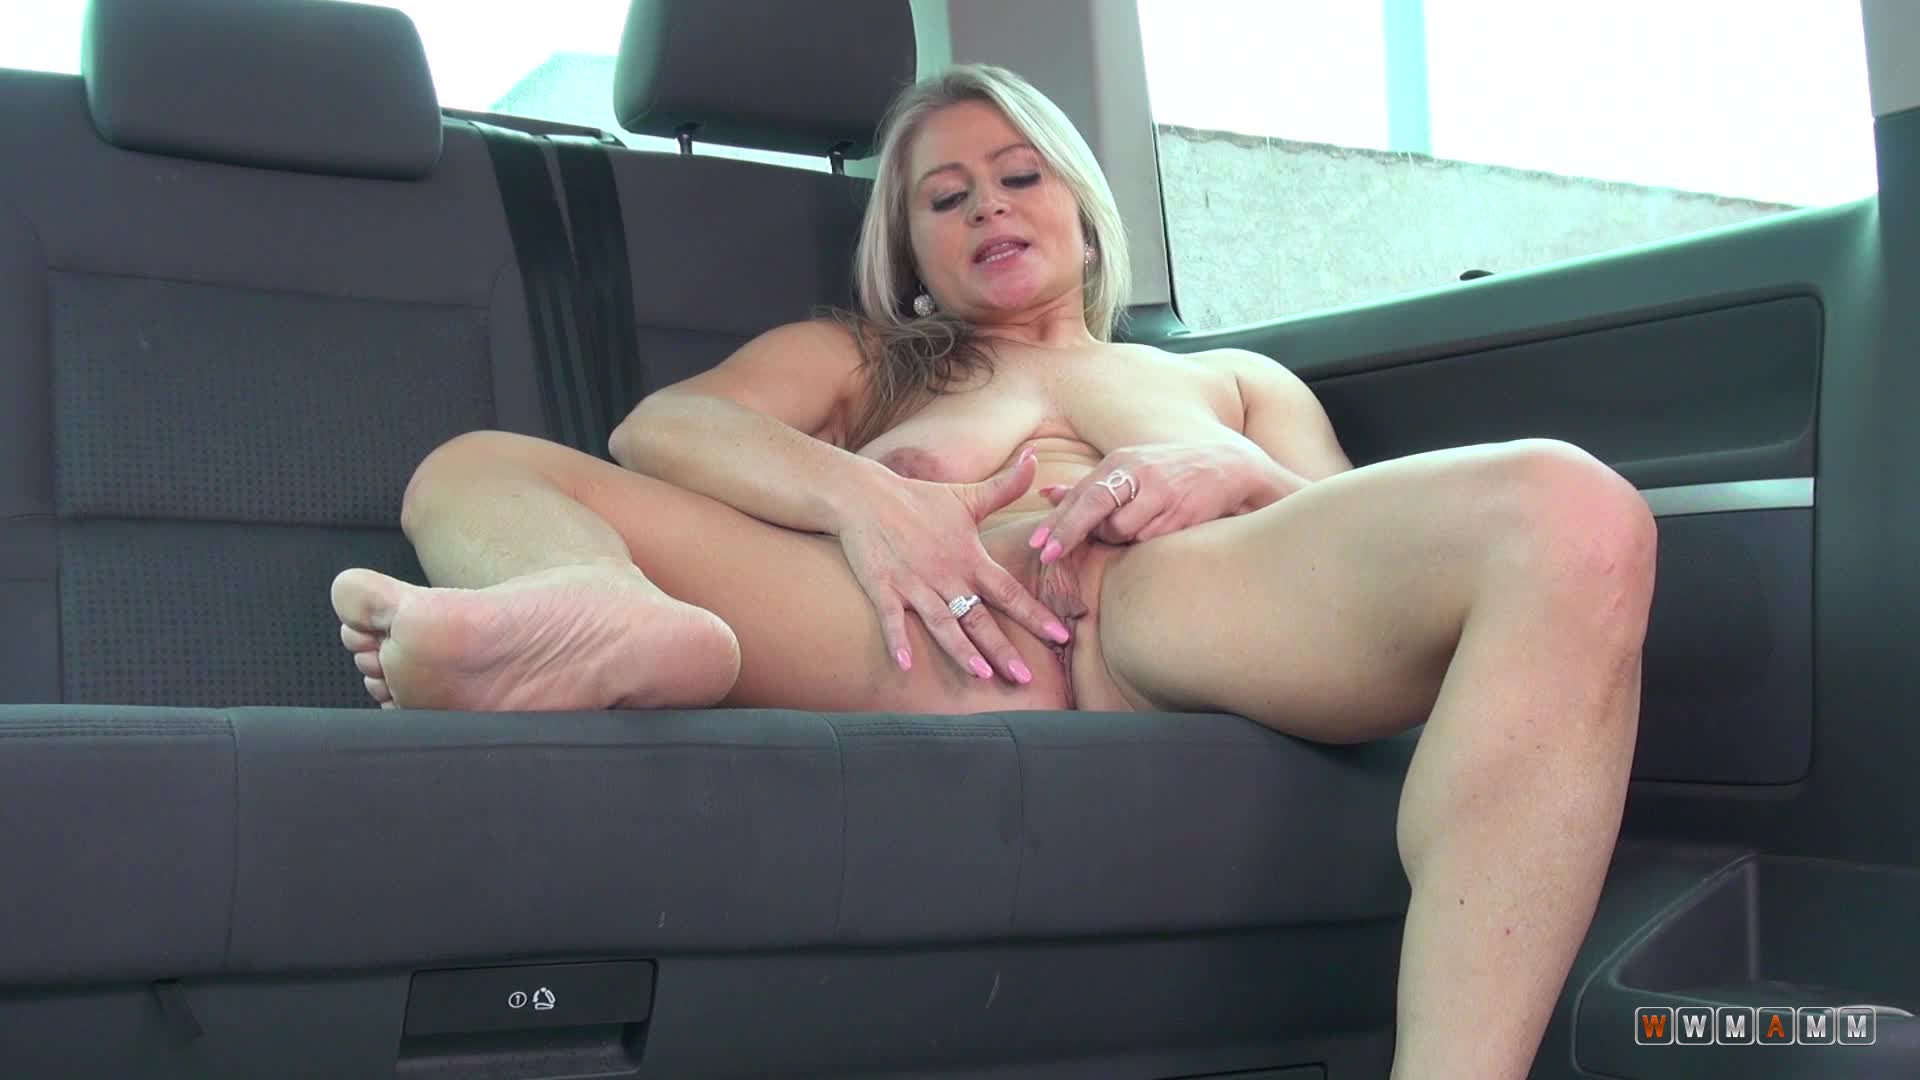 Zaira Connor's a Pretty Milf With Lust For Self Inflicted Orgasms